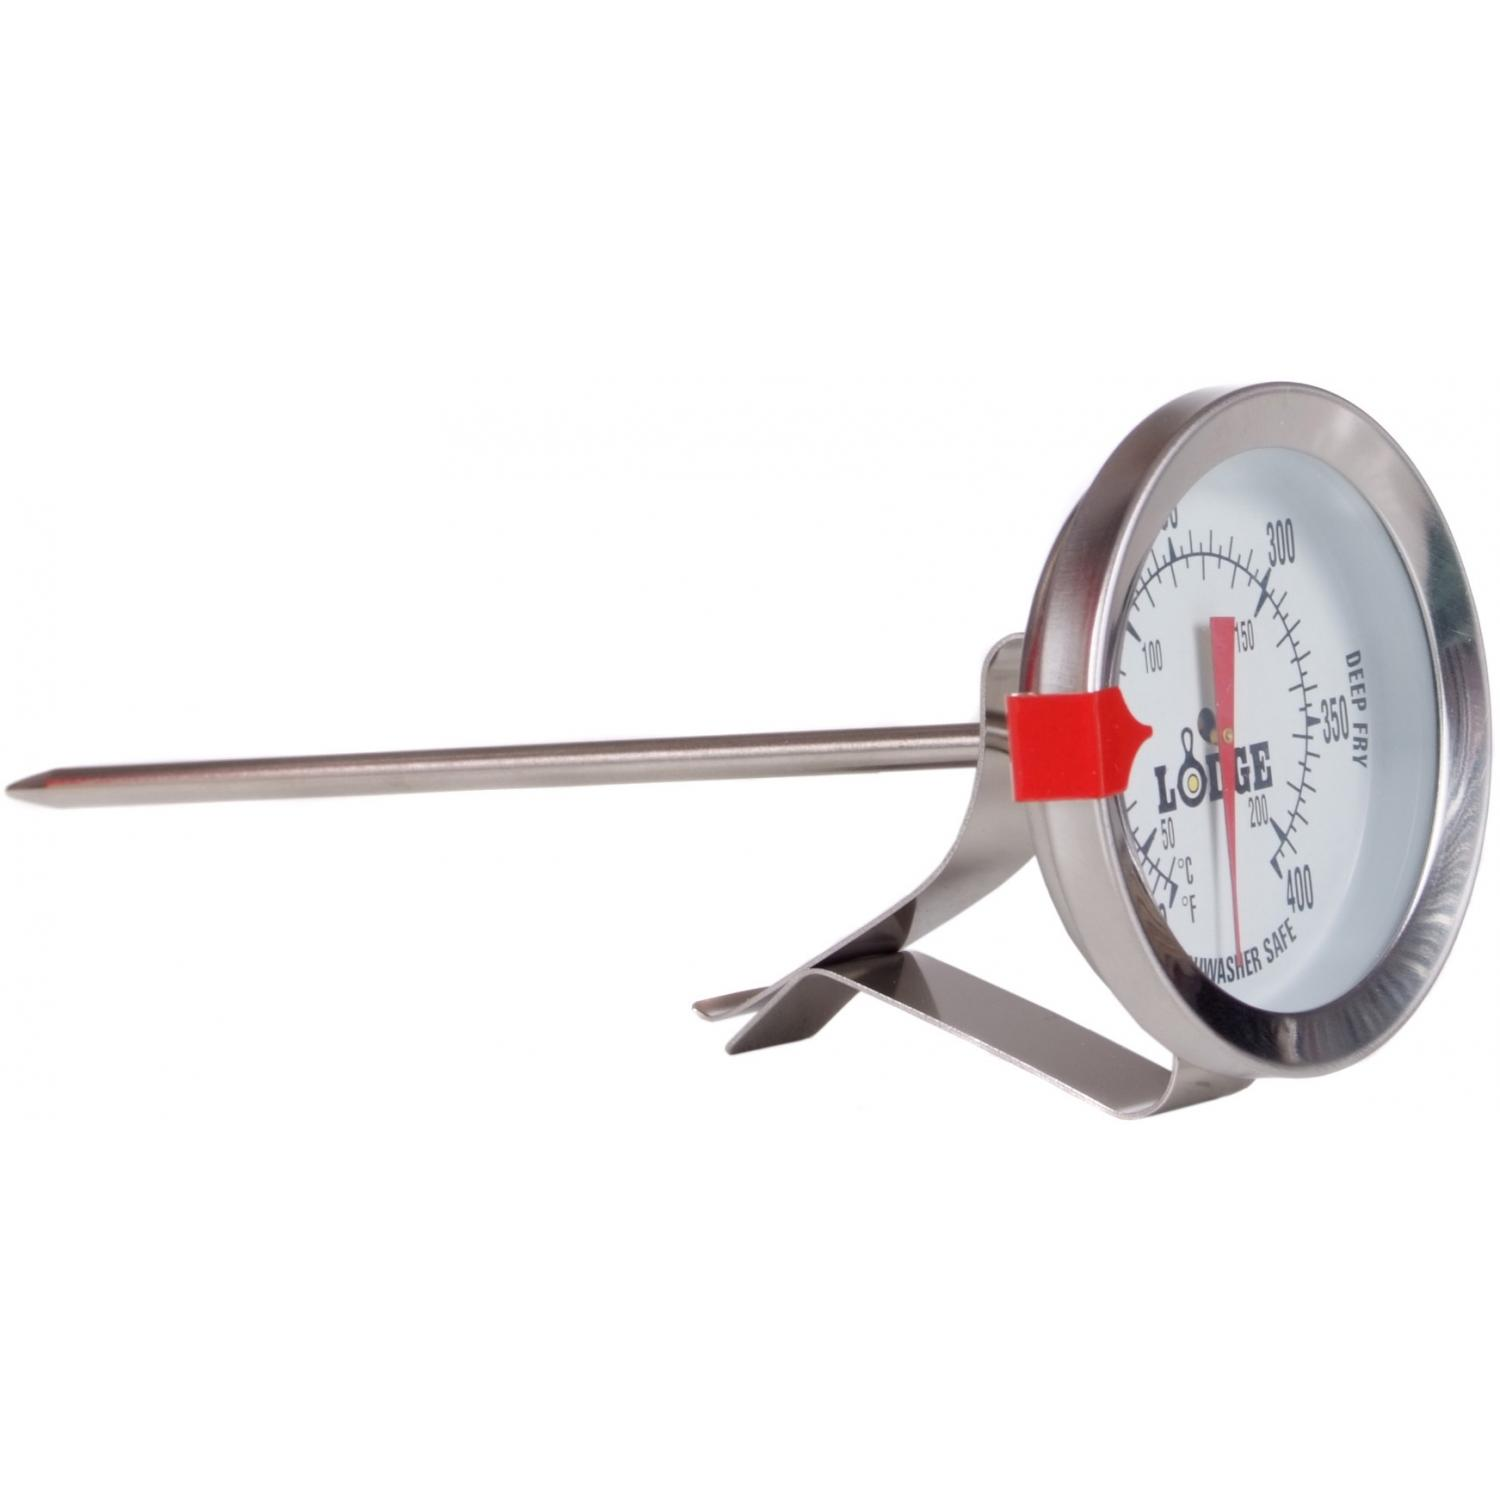 Lodge Deep Fry Thermometer - A280